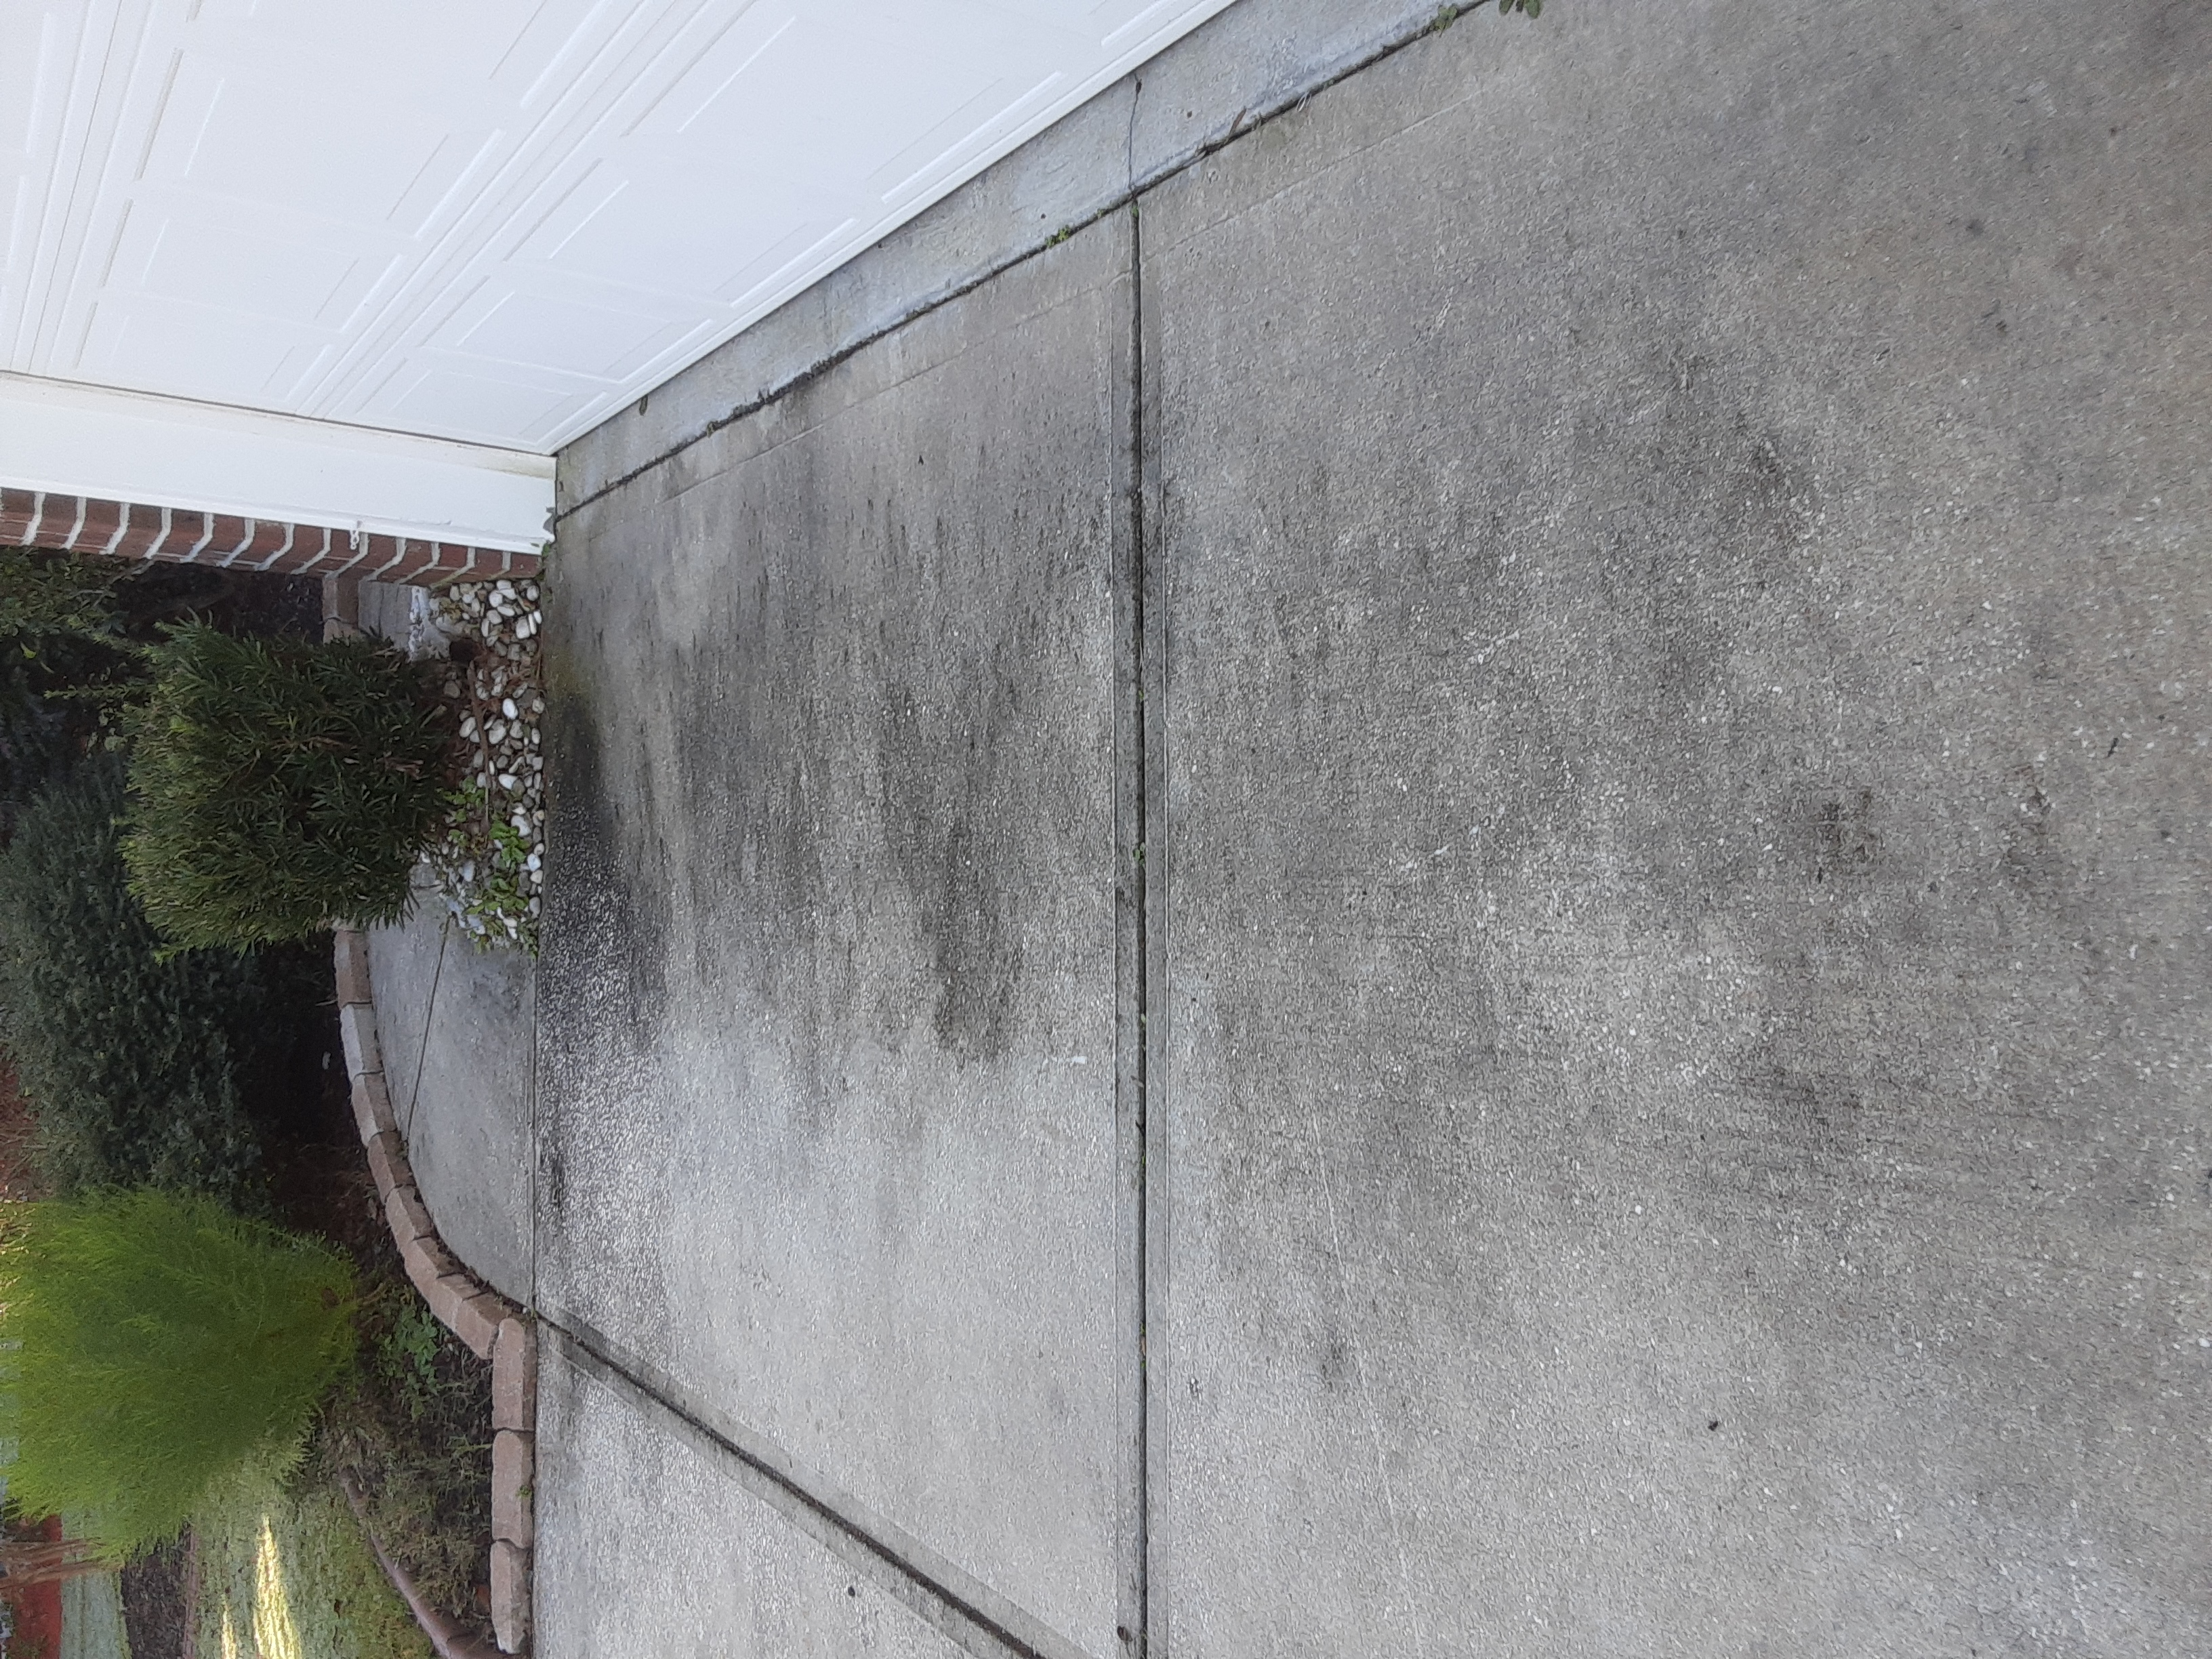 Driveway Cleaning In Murrells Inlet